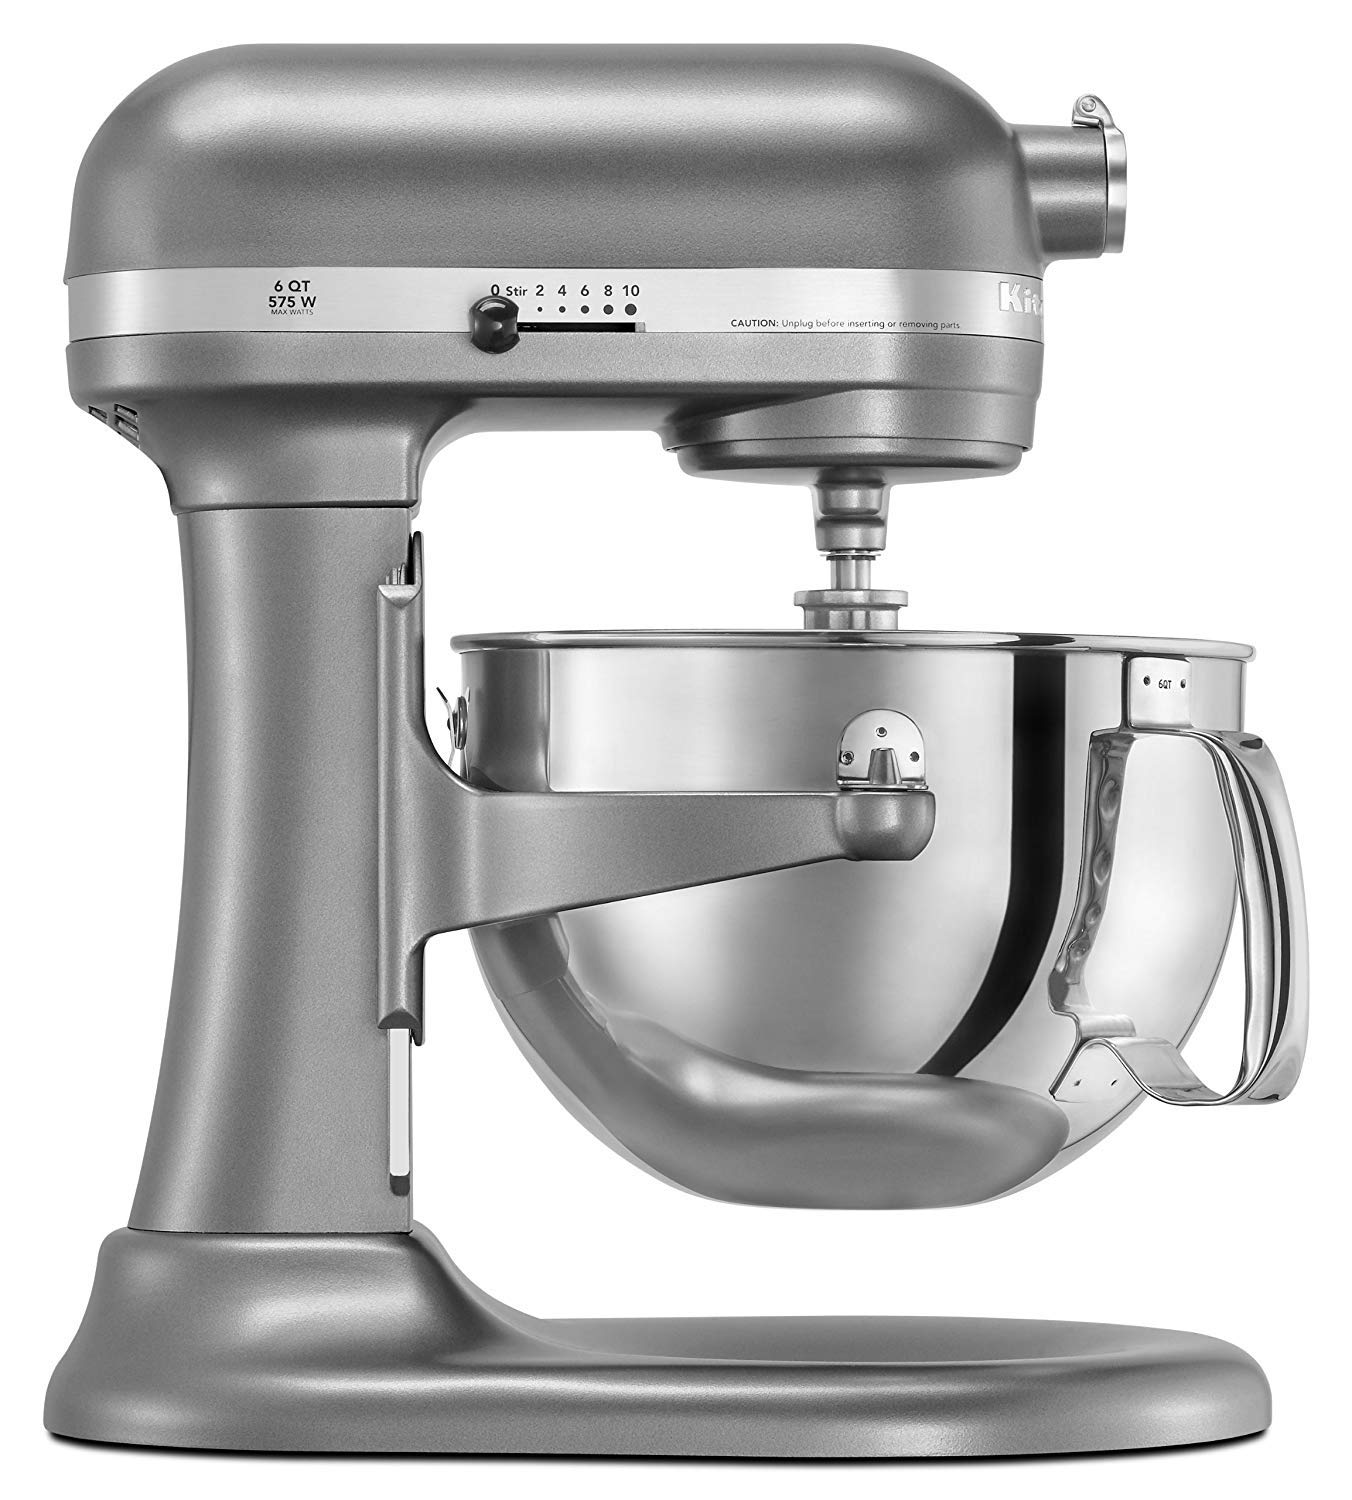 KitchenAid Factory Professional 600 6-Qt. Bowl-Lift Stand Mixer - Cocoa Silver (Renewed) by KITCHENAID